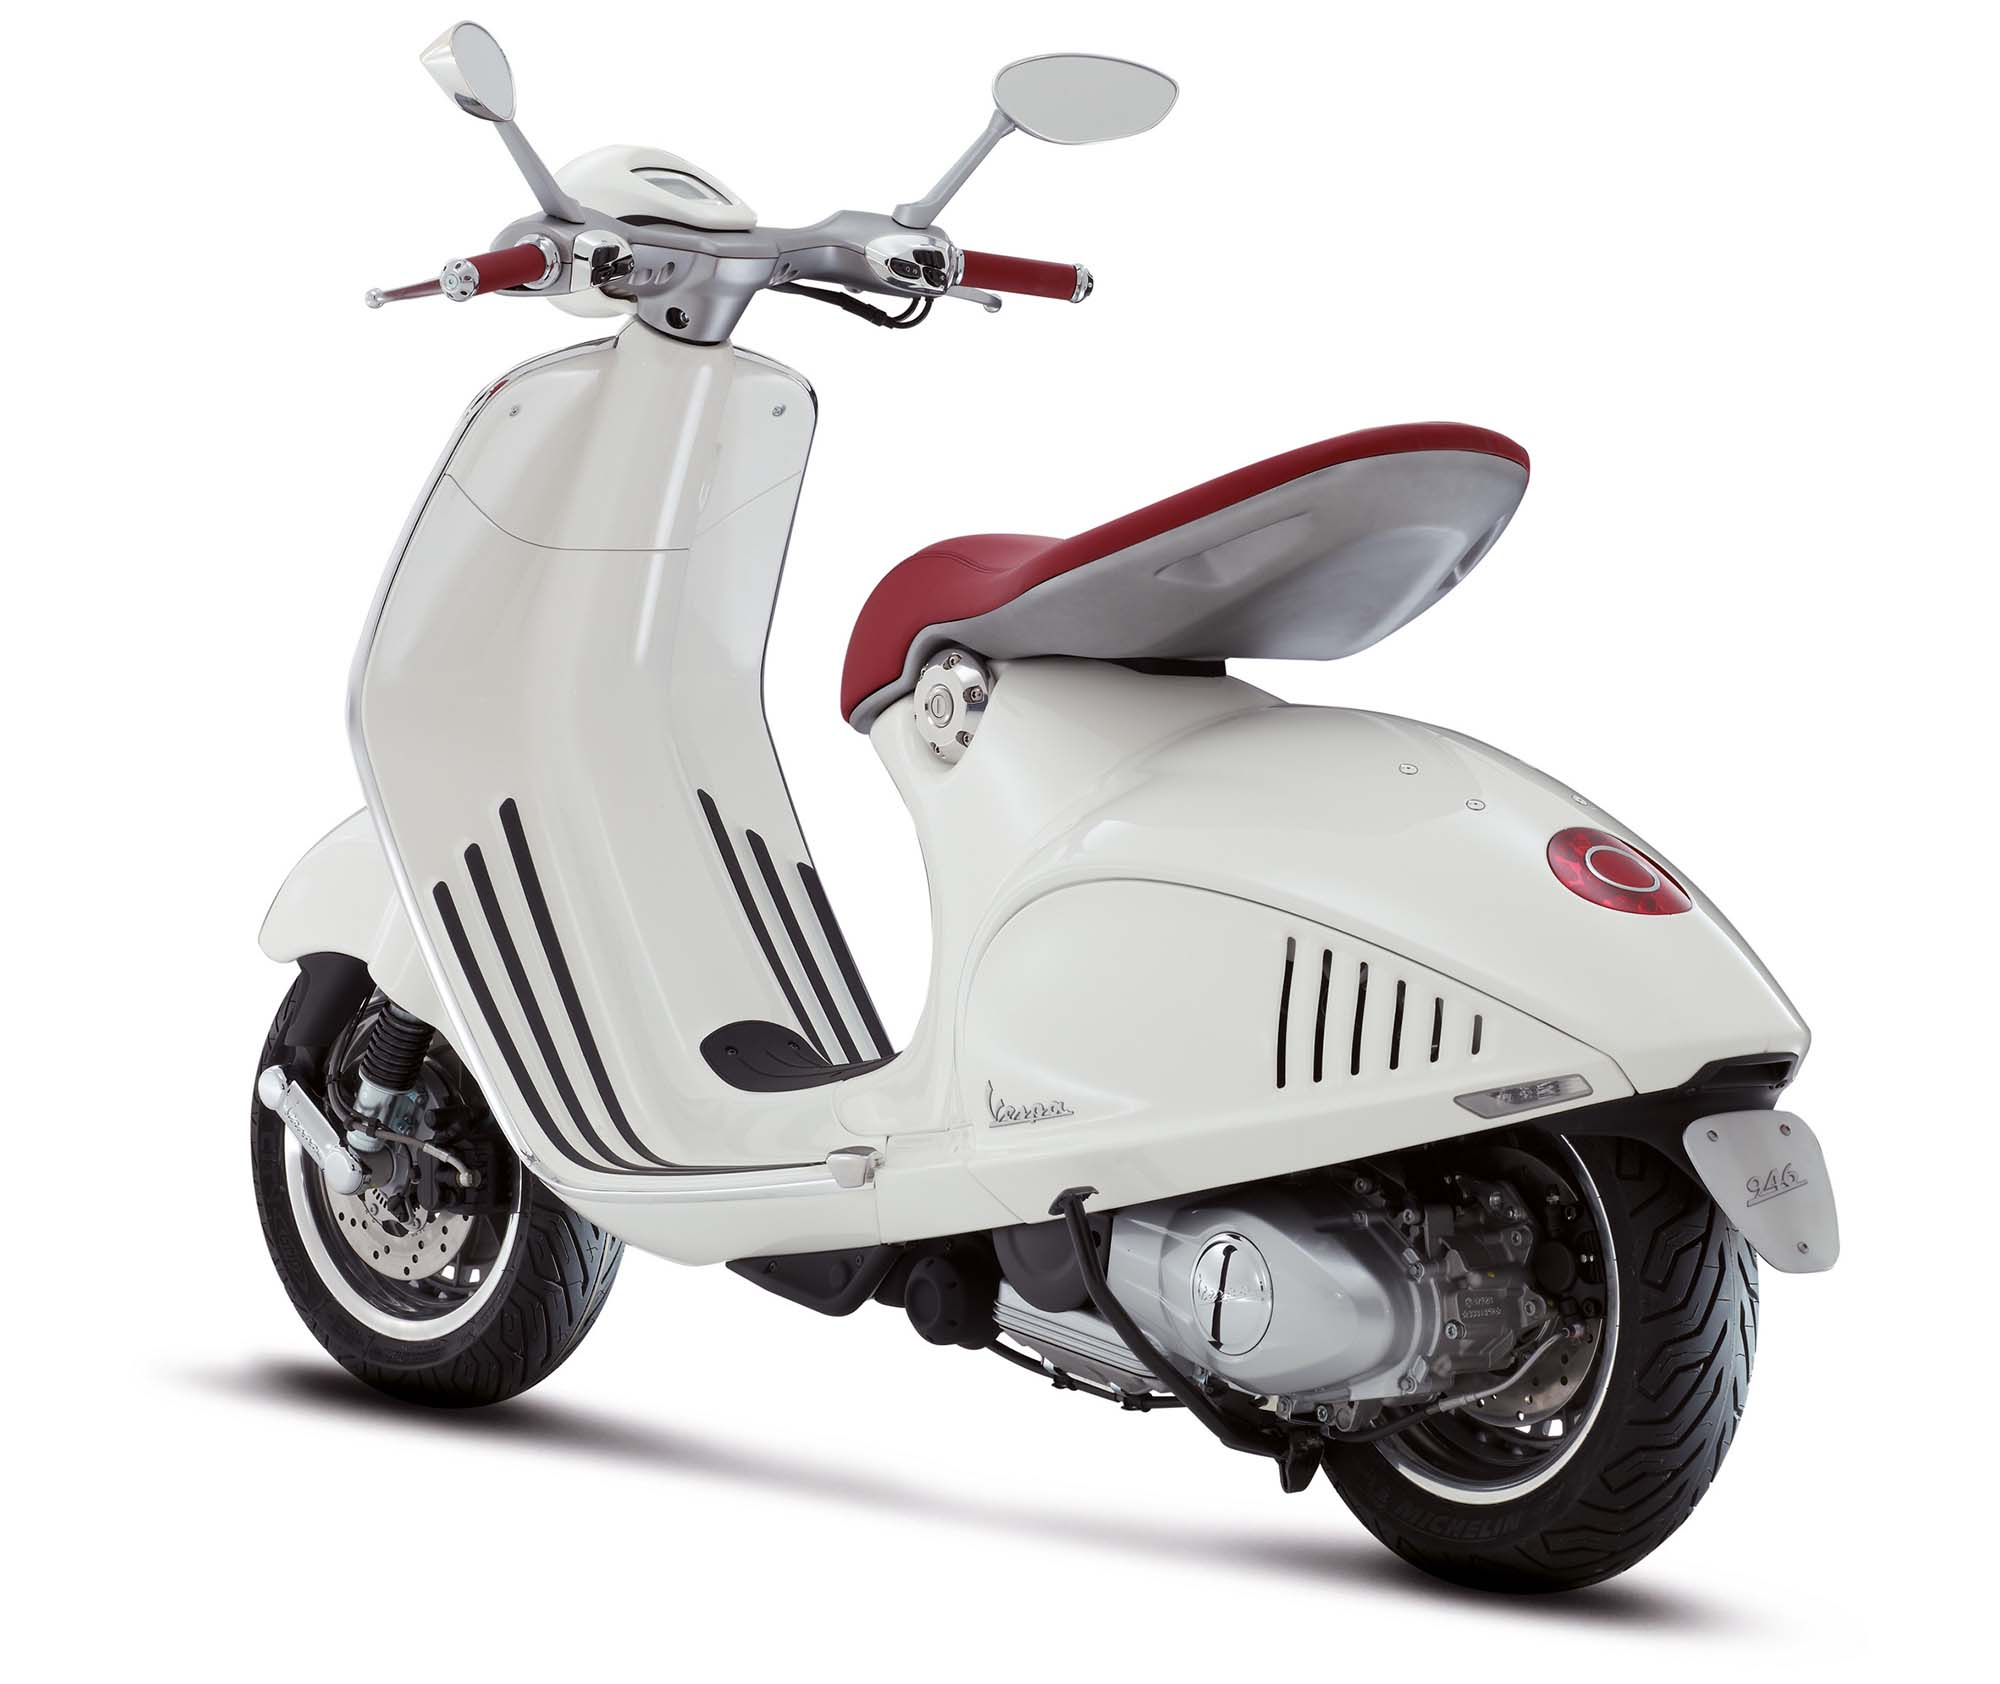 A&R's EICMA 2012 Best in Show: Vespa 946